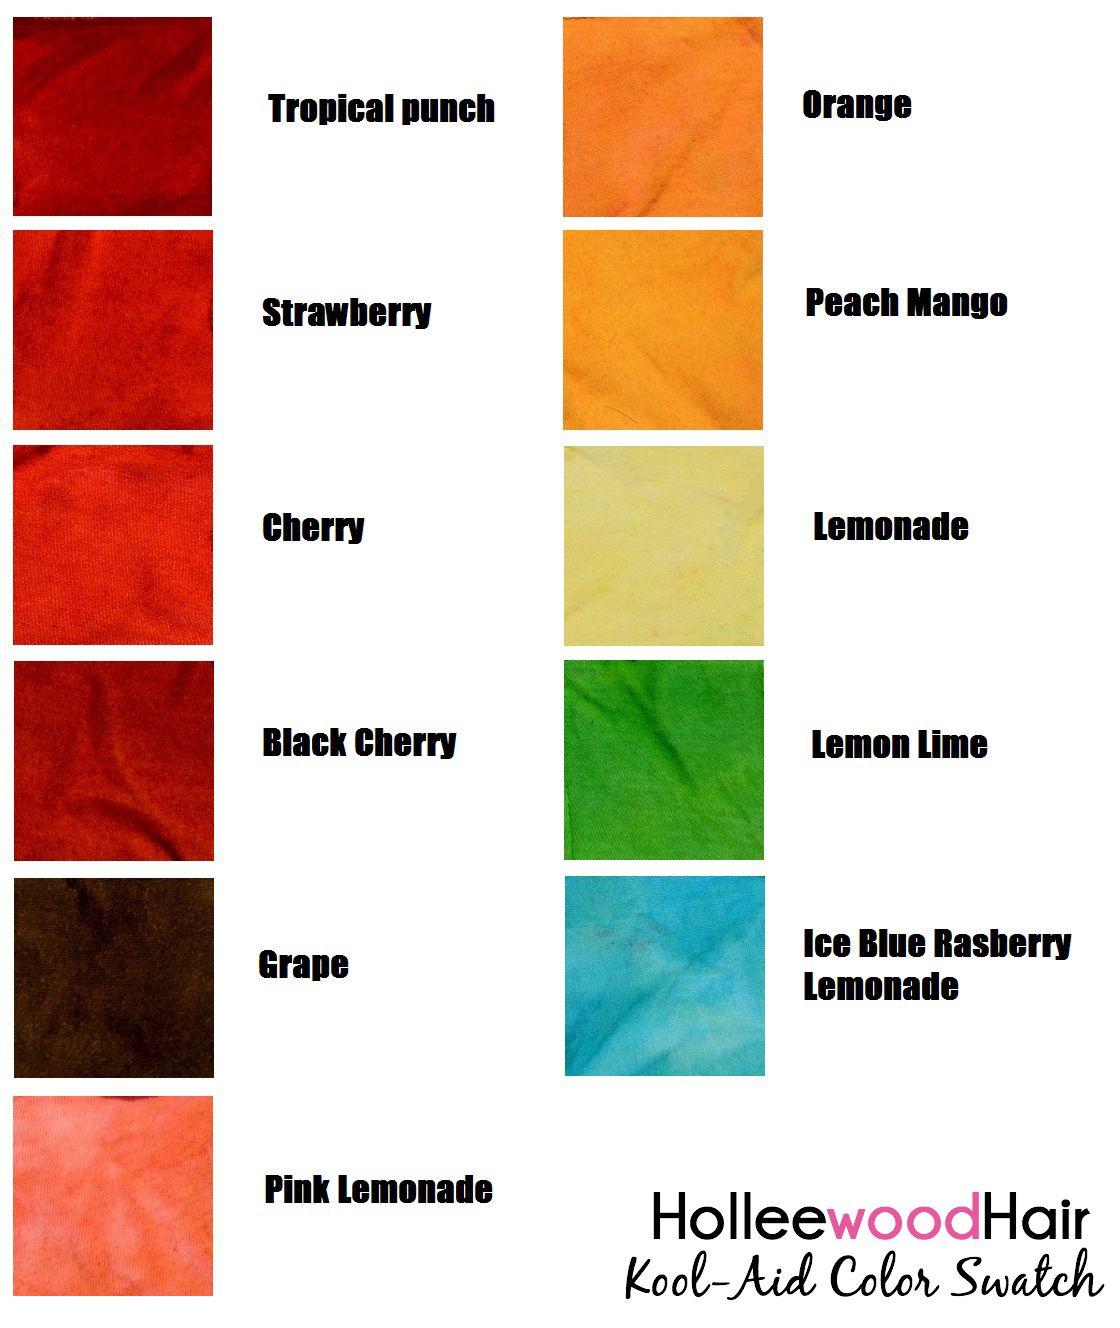 Kool Aid Hair Color 2021 Guide How To Dye Your Hair With Kool Aid Kool Aid Hair Kool Aid Hair Dye Hair Dye For Kids